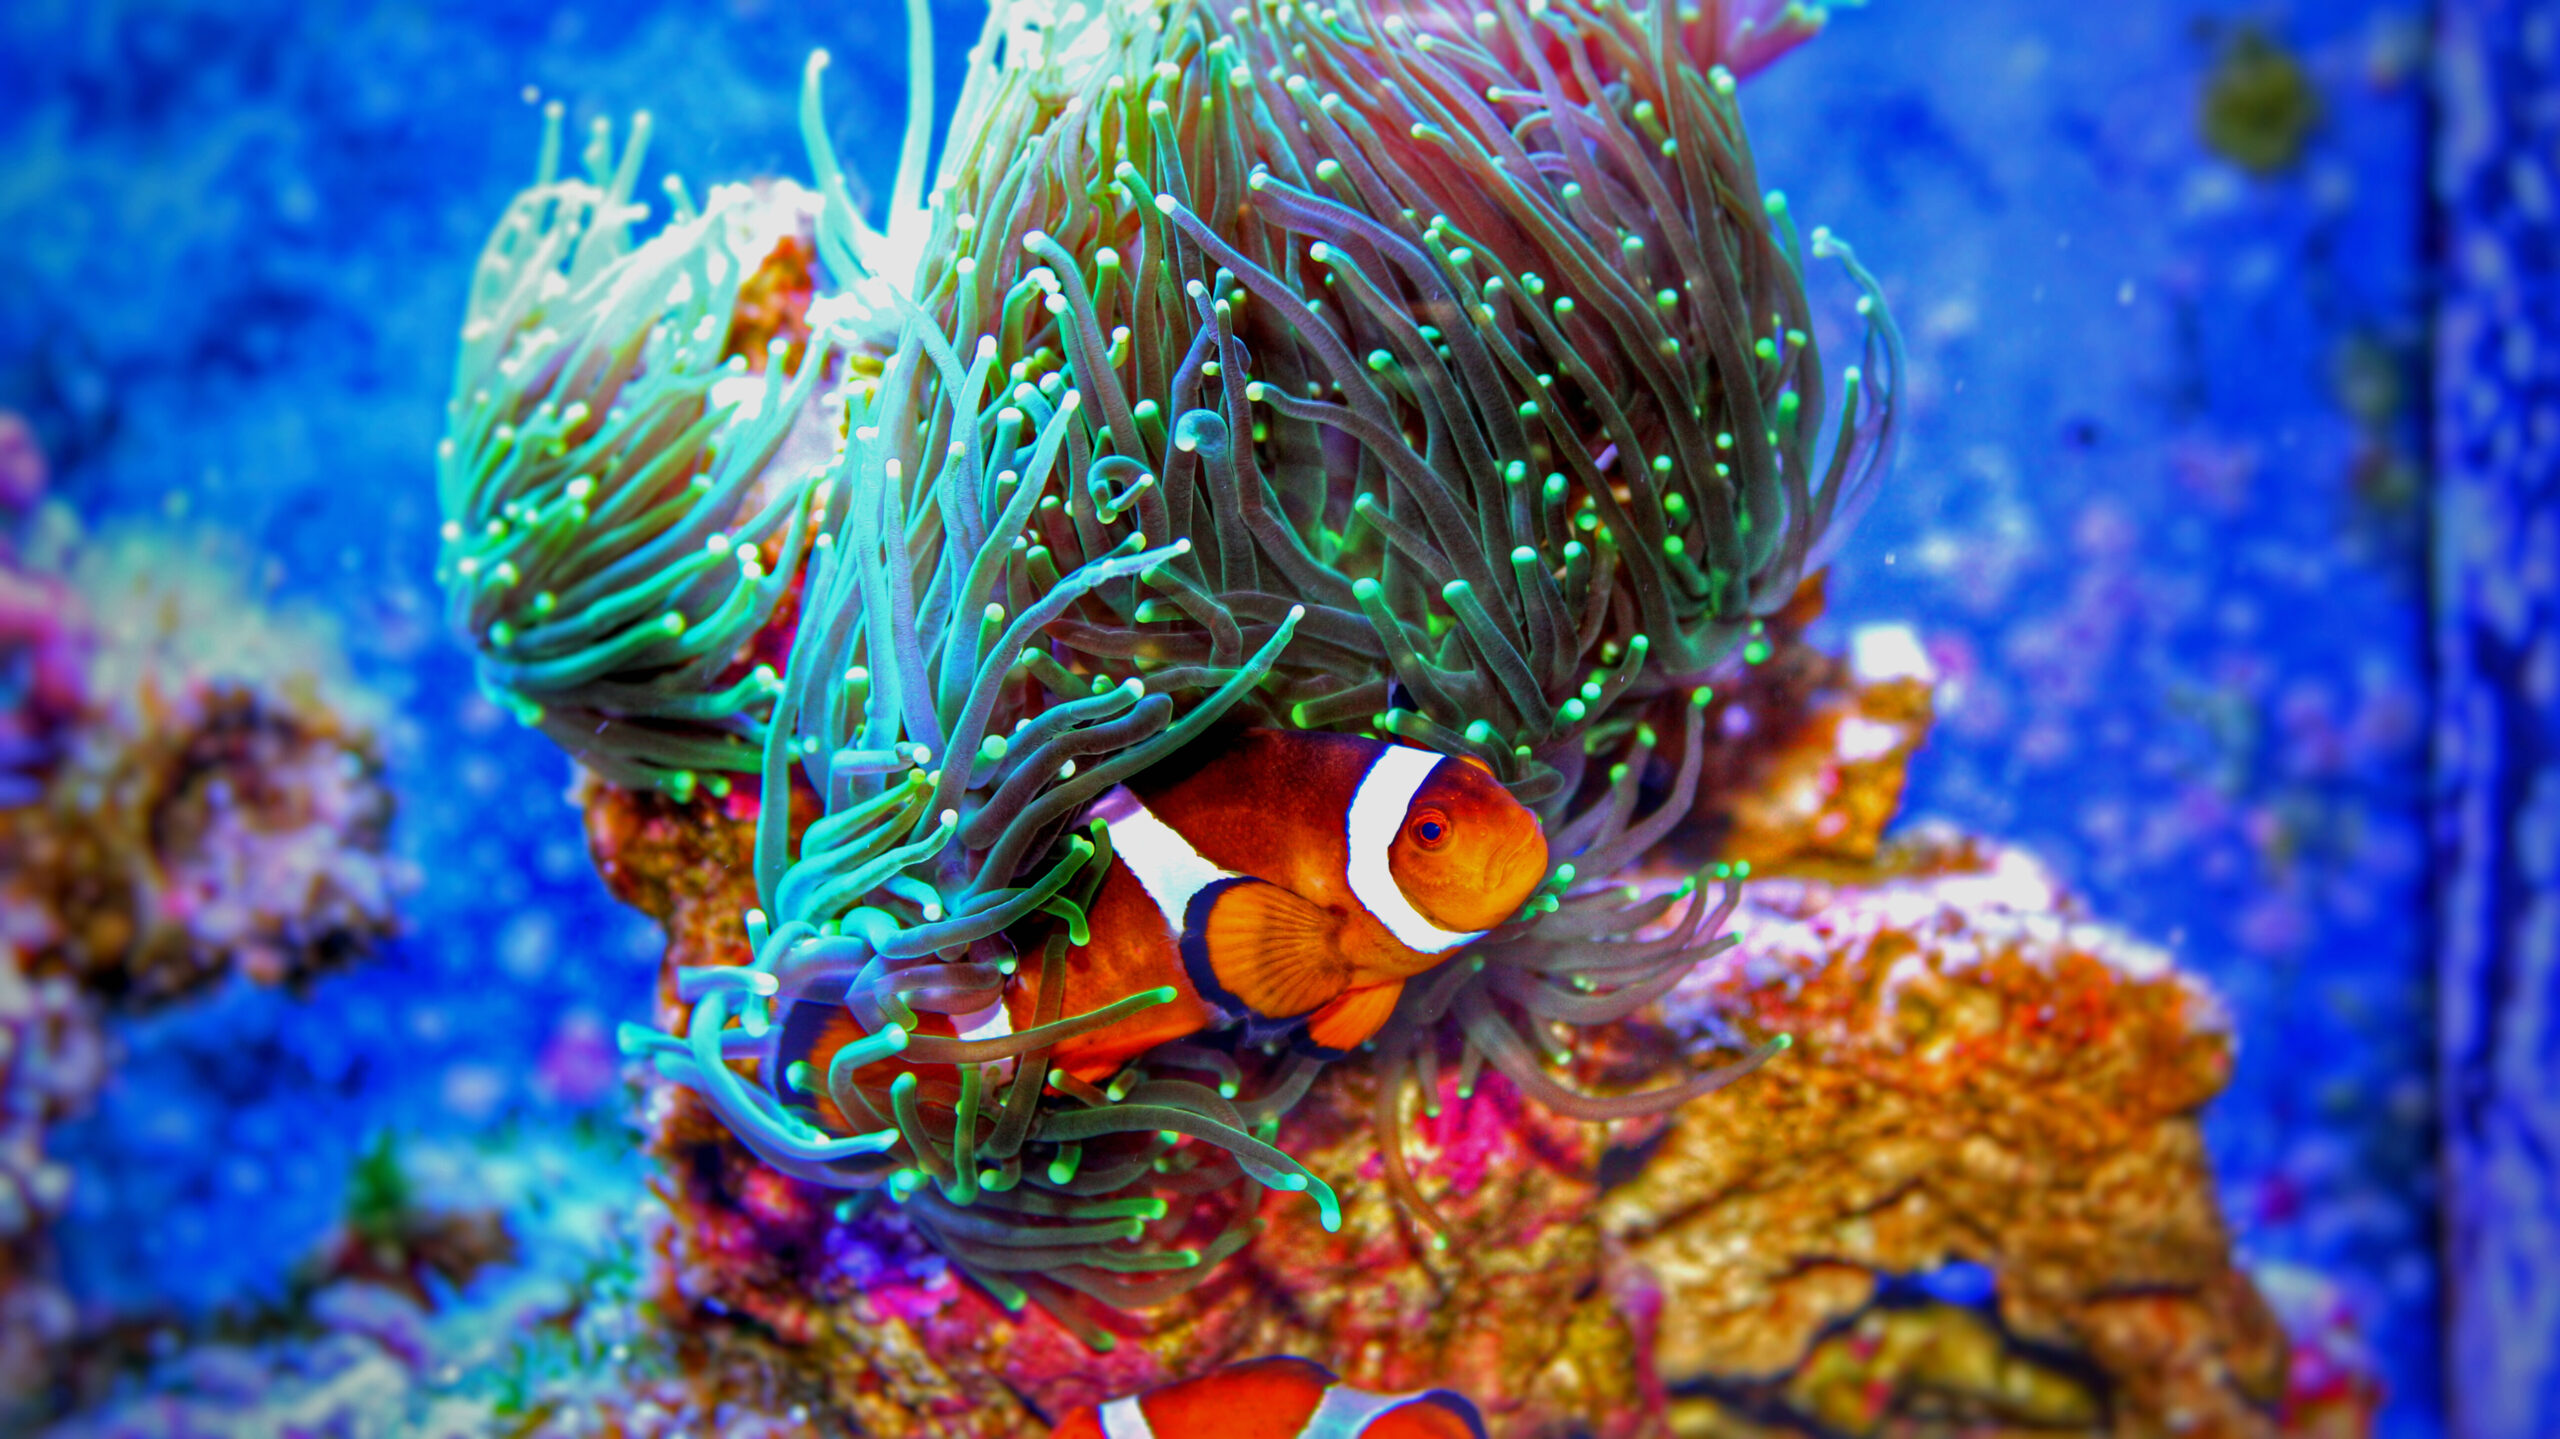 Coral Reefs and it's inhabitants